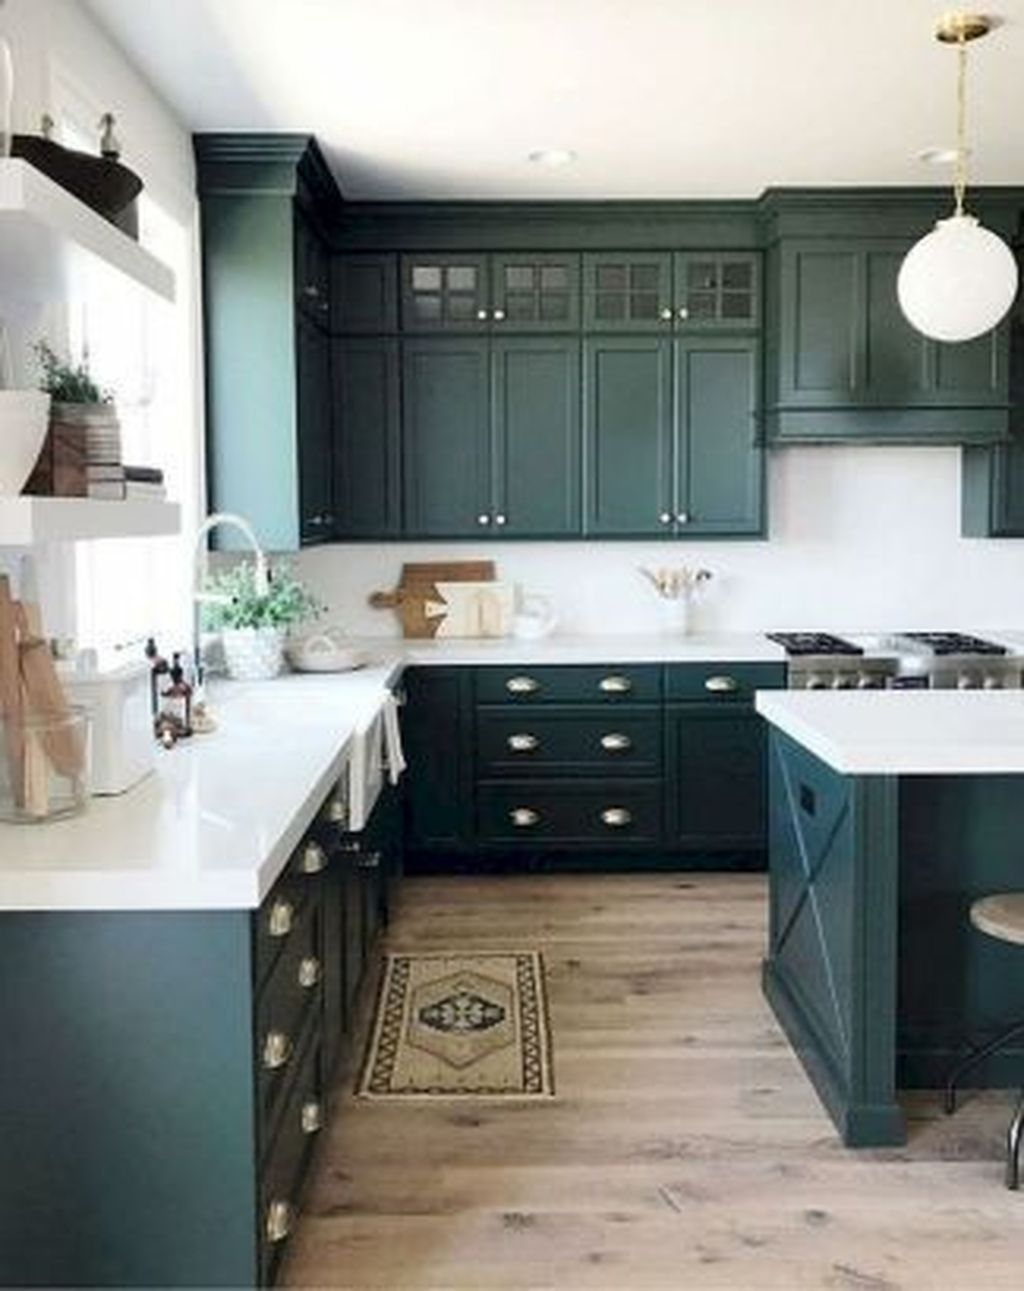 36 lovely kitchen cabinets colors ideas that you should apply green kitchen cabinets new on kitchen cabinet color ideas id=88690